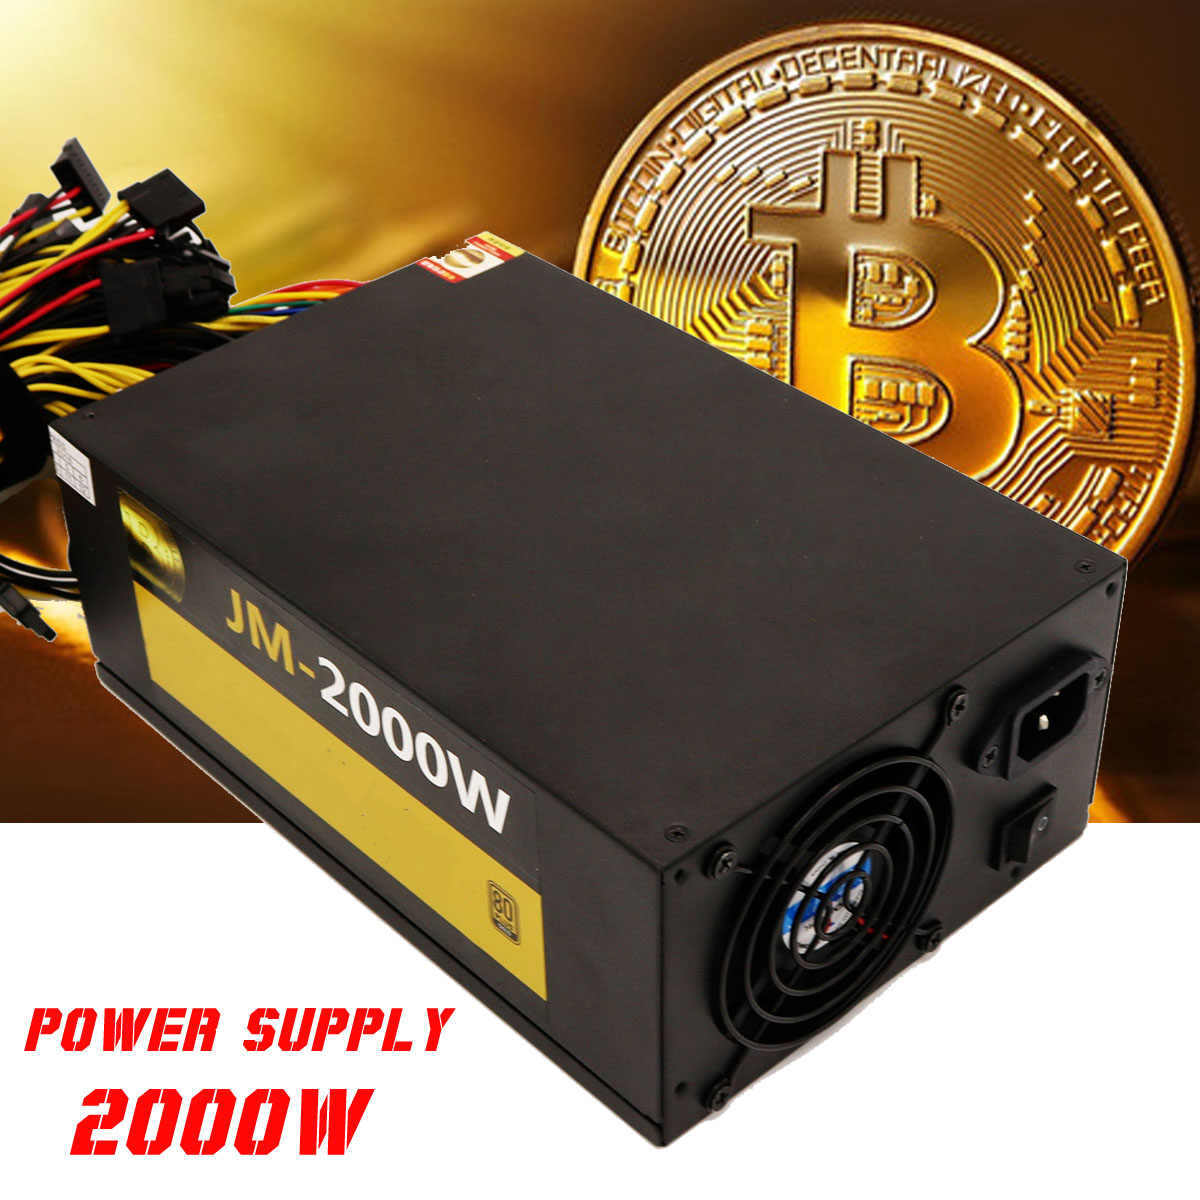 Profesional PC Power Supply untuk Bitcoin Miner ATX 2000W ETH Koin Mining Bitcoin Pasokan Listrik 12V PC Komputer pc Power Supply